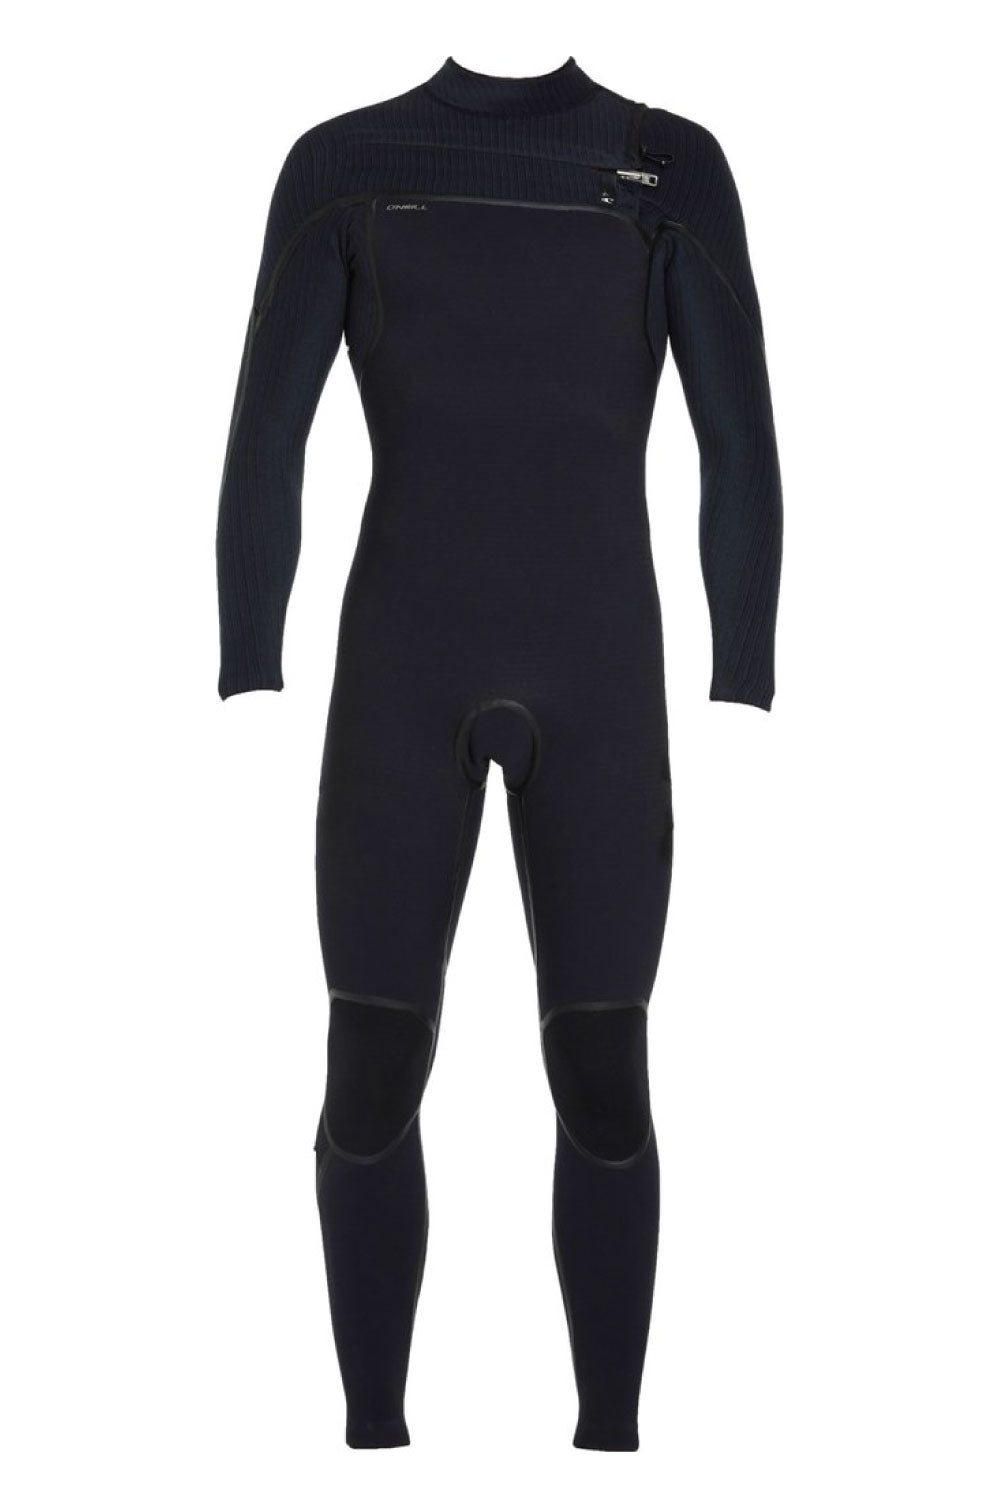 O'Neill O'Limited Series 3/2mm Steamer Chest Zip Wetsuit